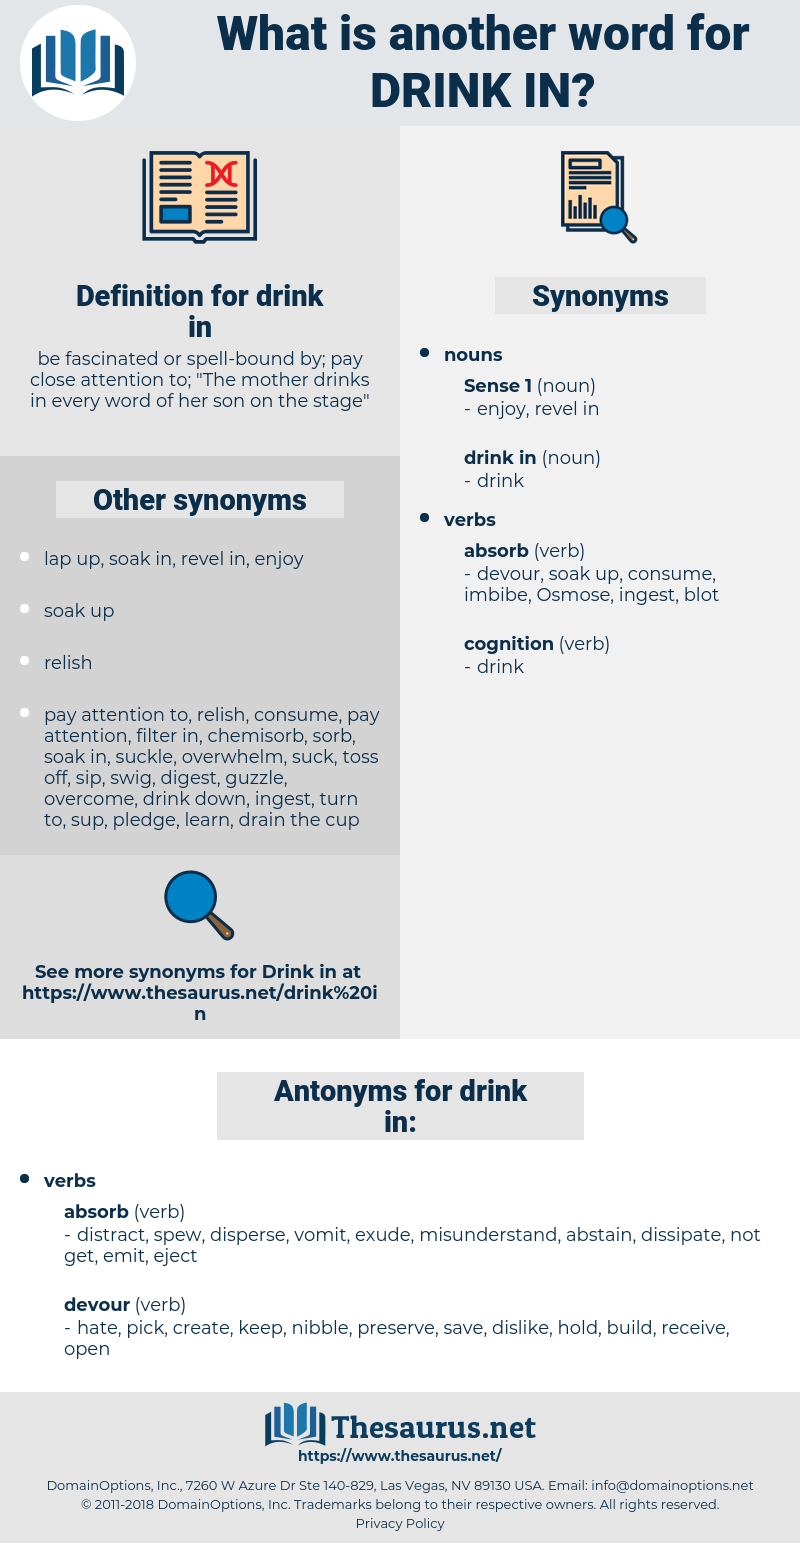 drink in, synonym drink in, another word for drink in, words like drink in, thesaurus drink in